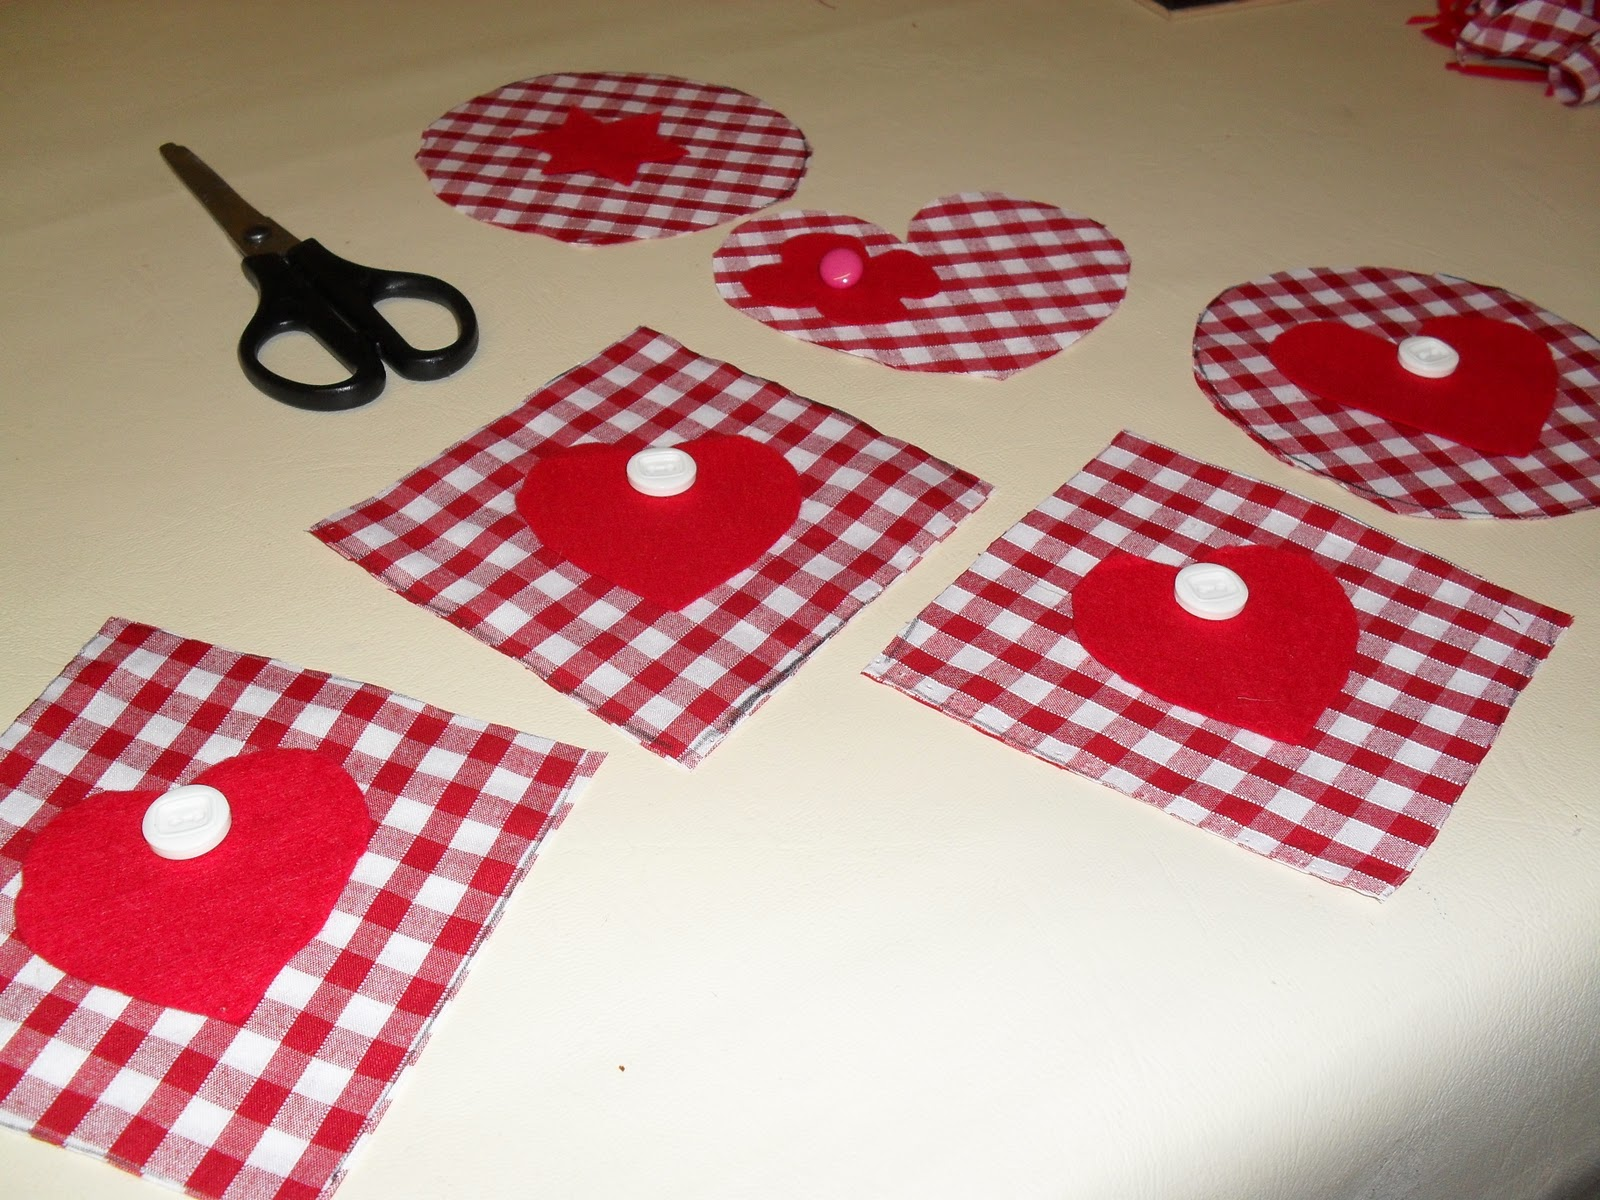 ... and simple life: christmas countdown - sewing decorations for the tree